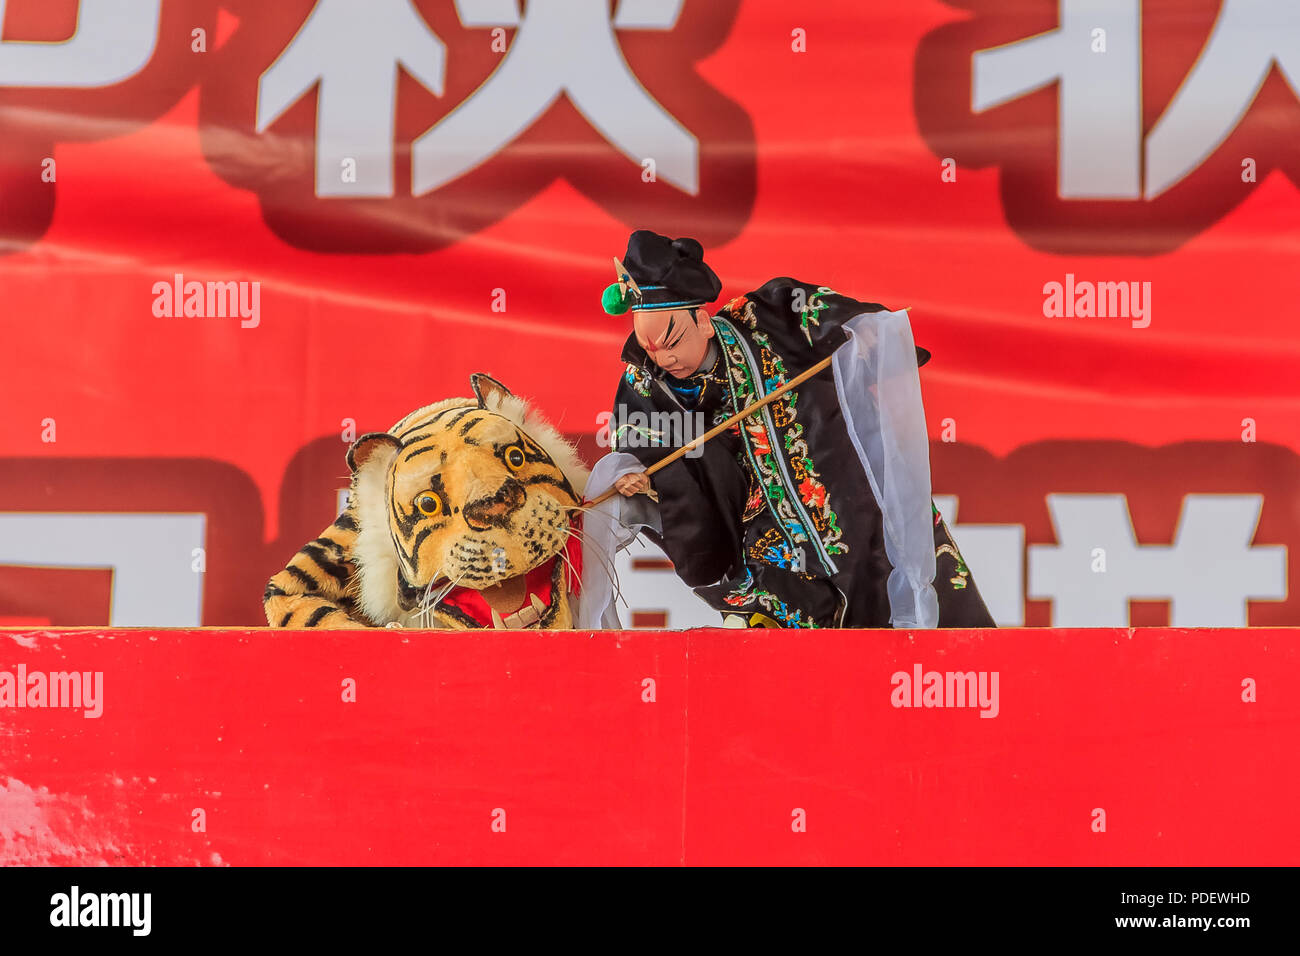 Xiamen, China - September 14, 2013: Chinese puppeteer performing a hand puppet show about Wu Song killing the man-eating tiger based on an ancient Chi - Stock Image